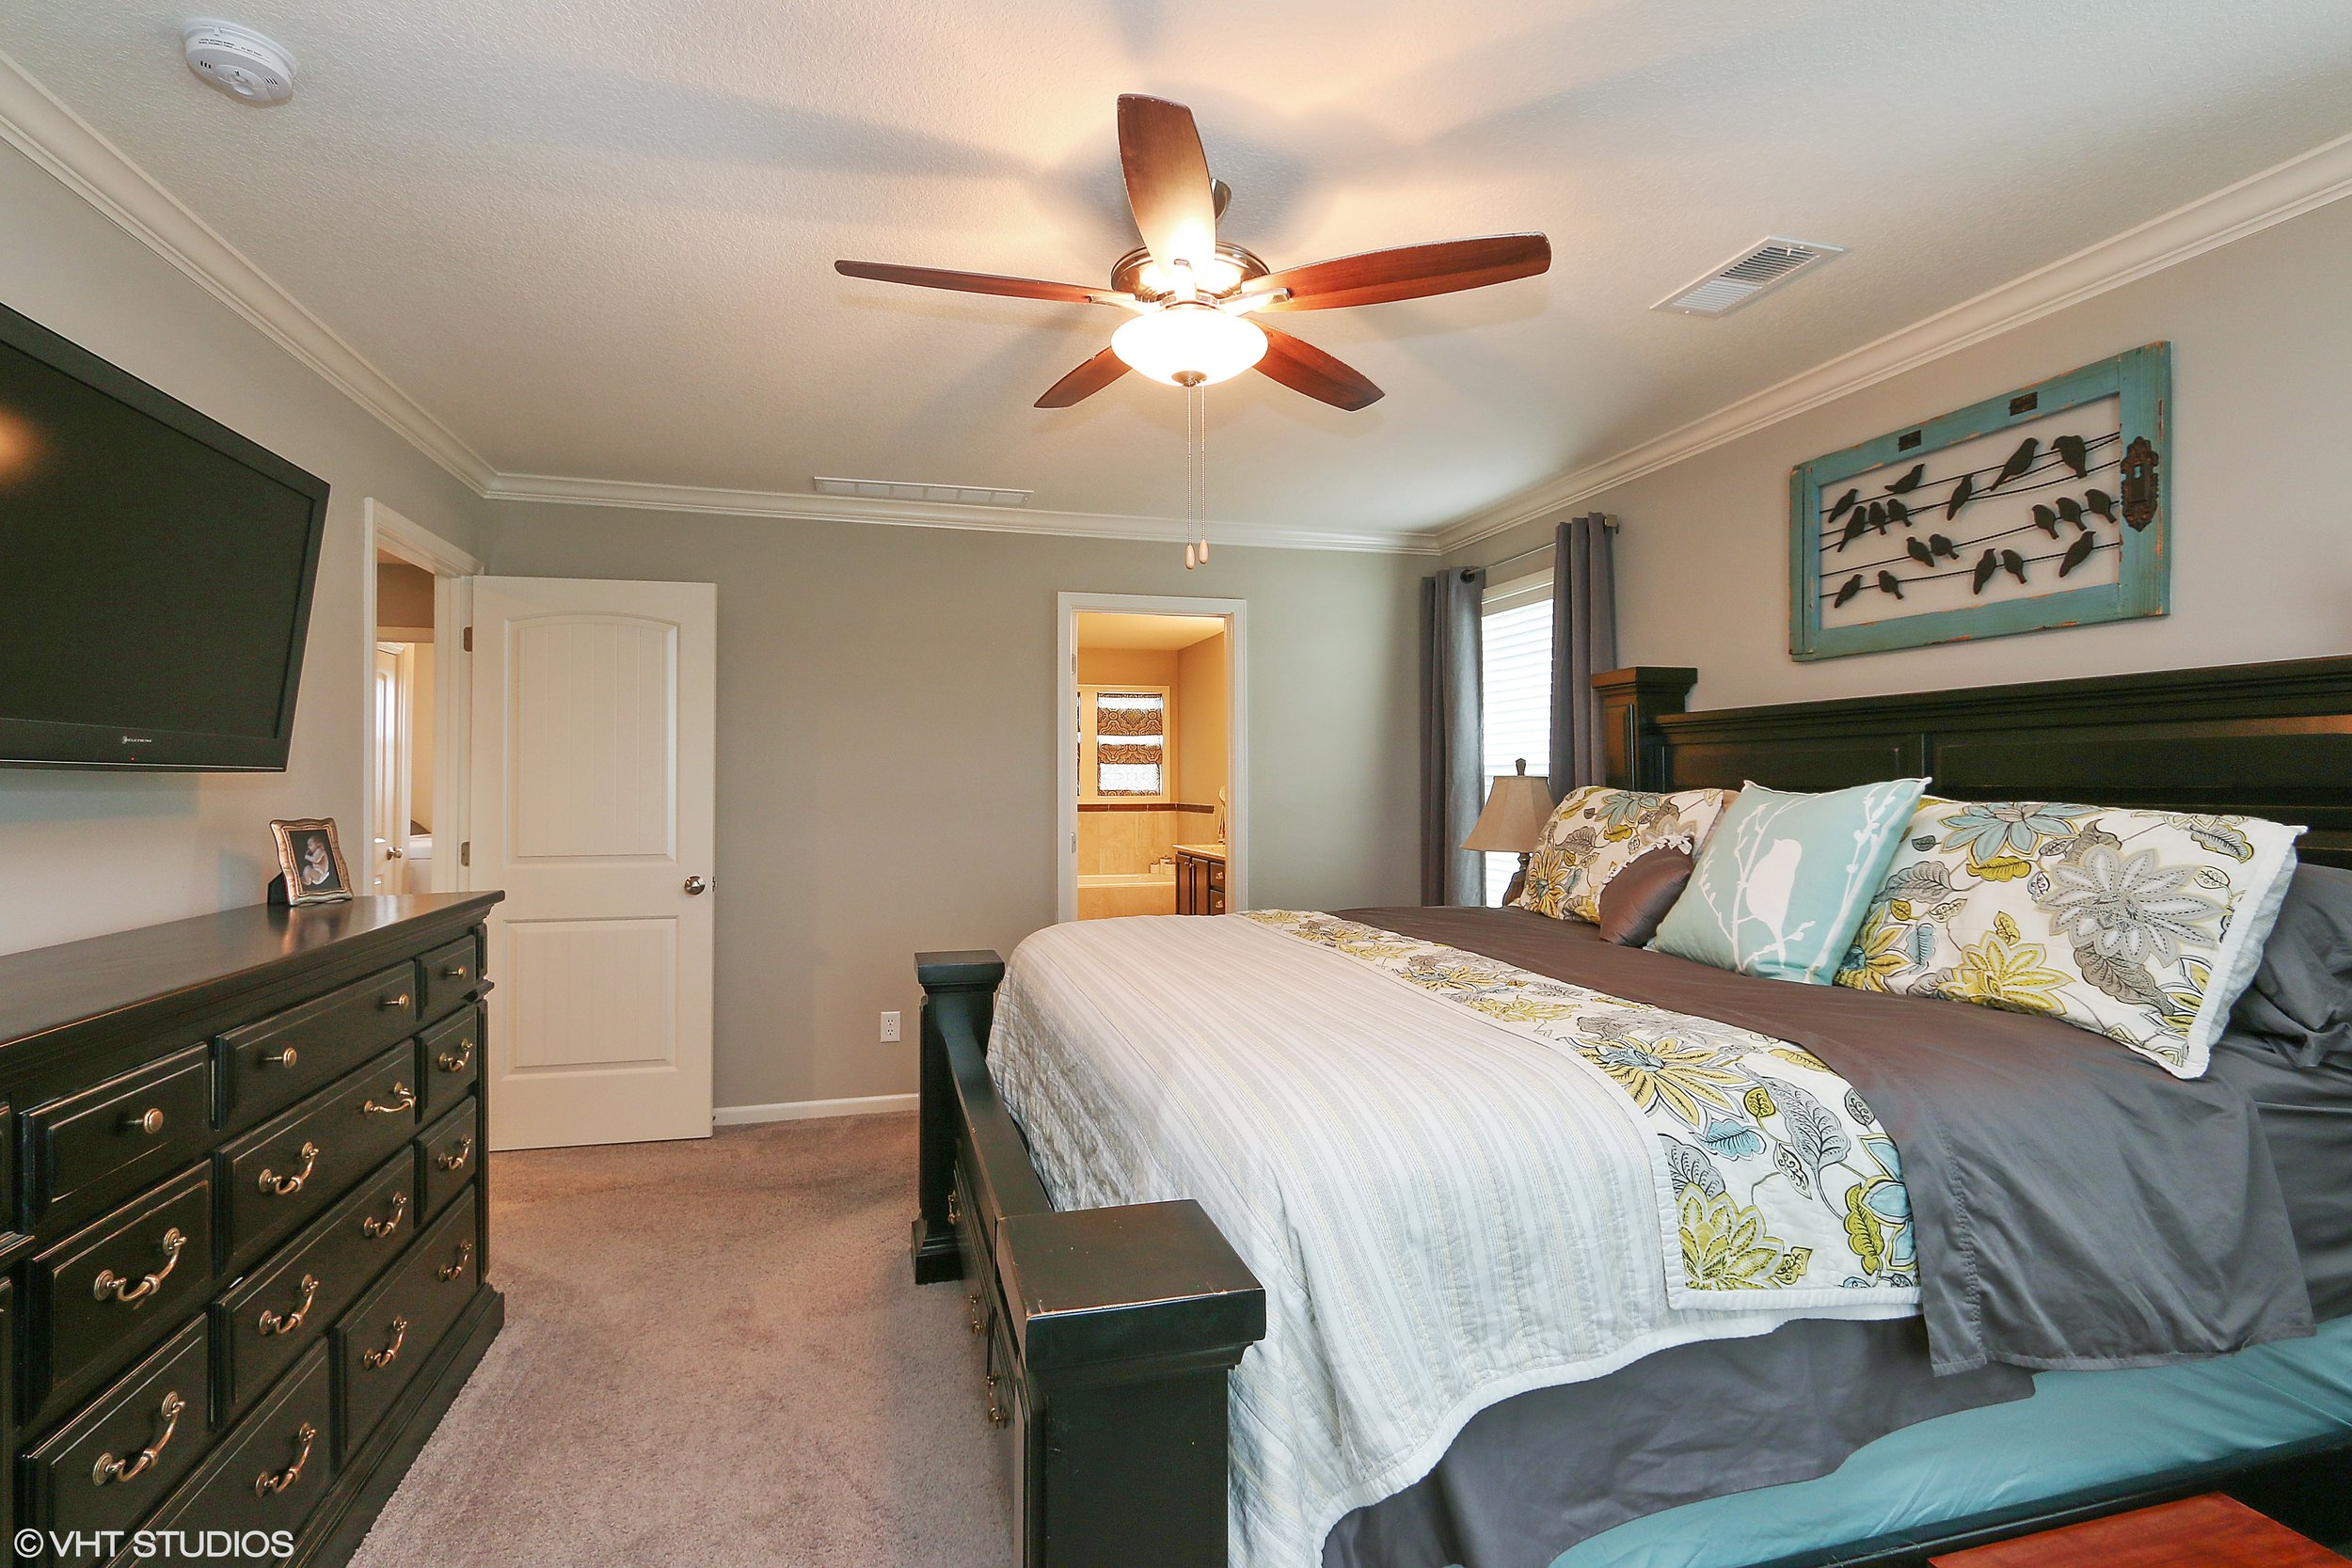 14_3304SWArenaSteet_178_MasterBedroom_HiRes.jpg